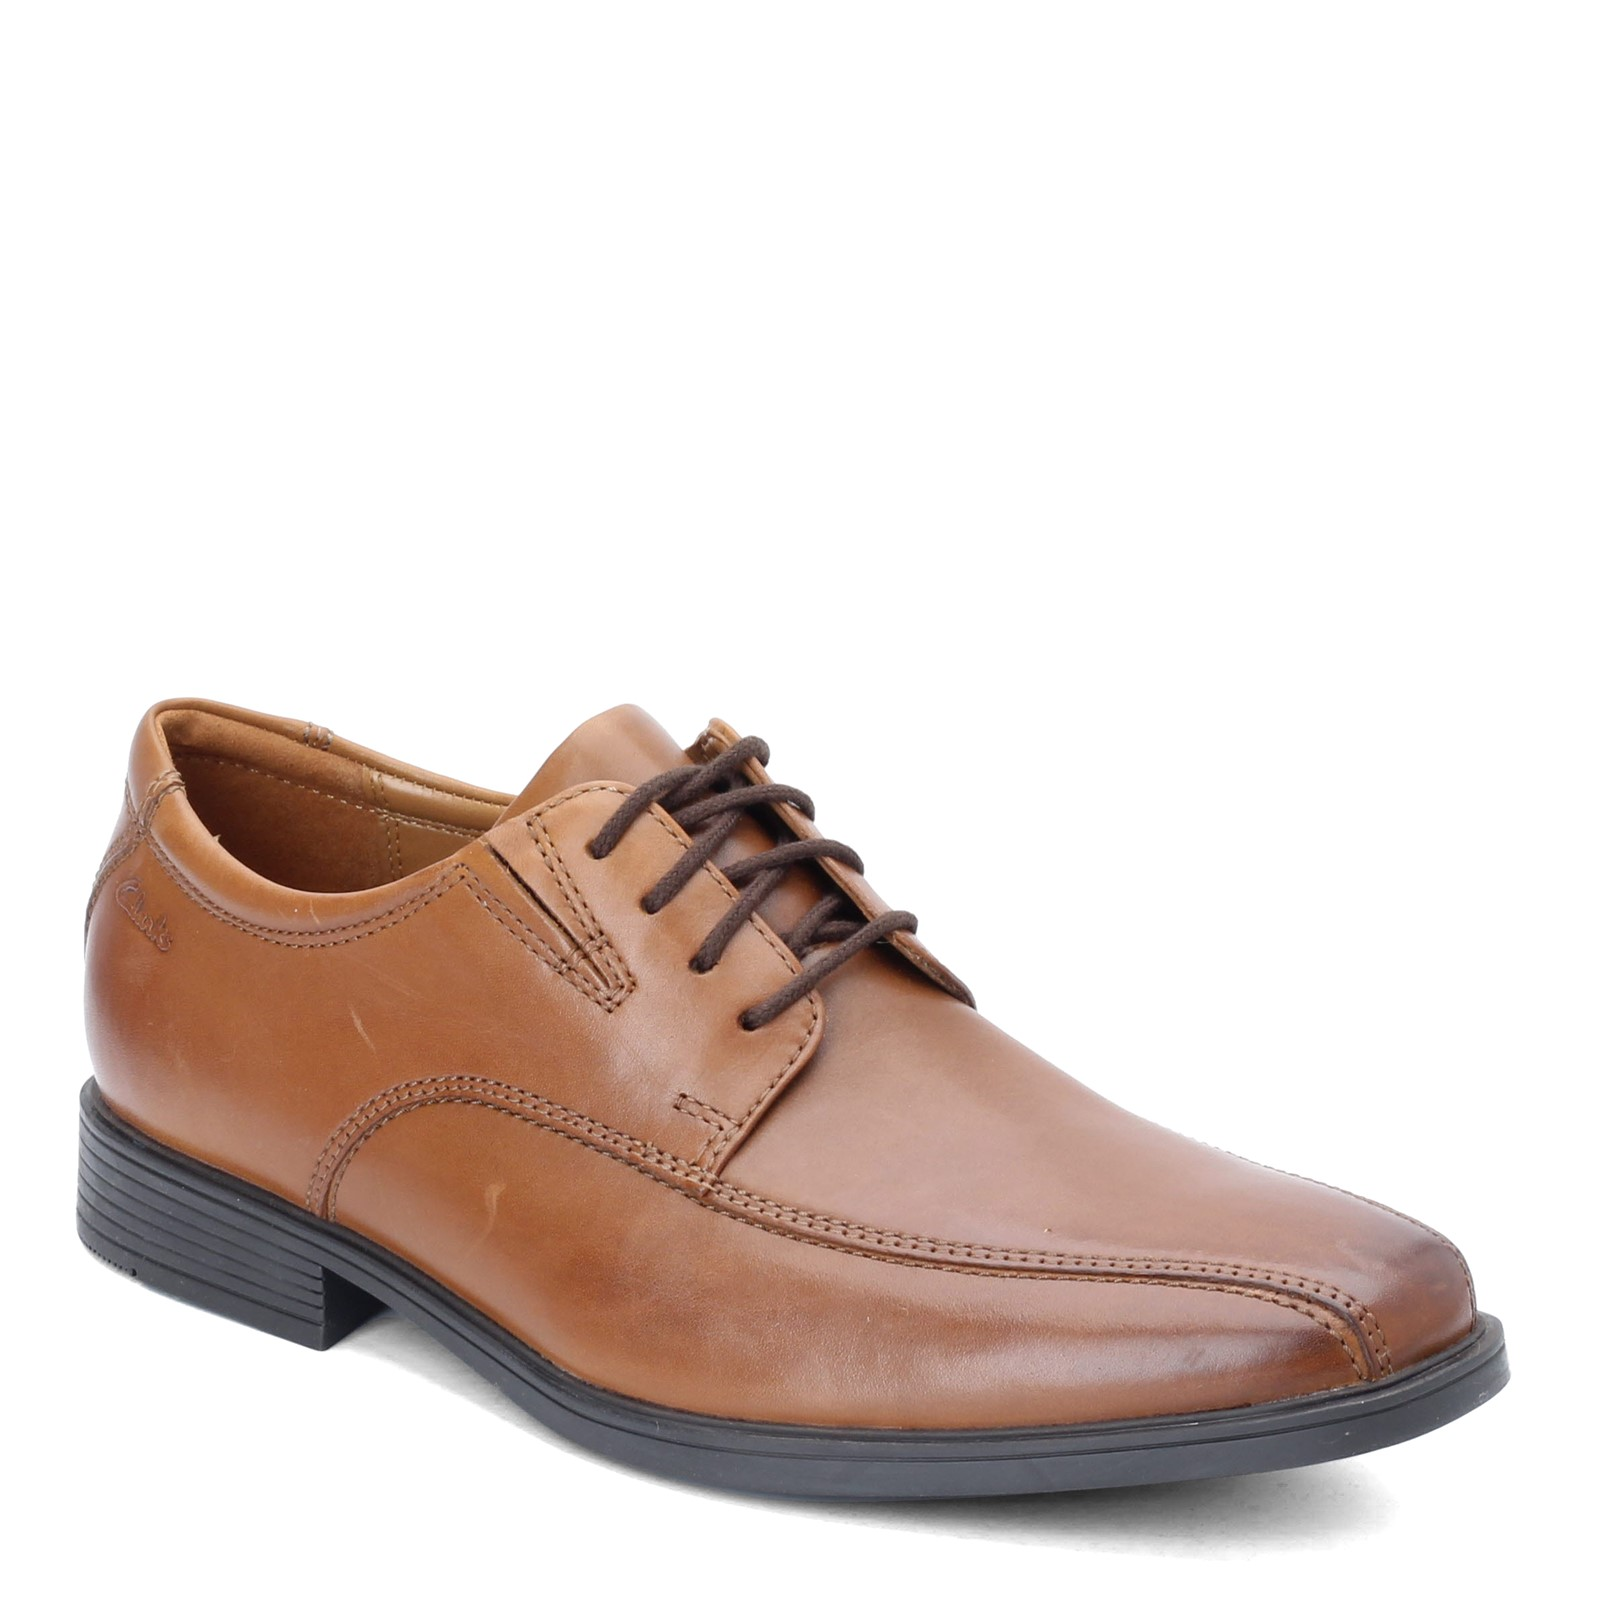 Men's Clarks, Tilden Walk Oxford